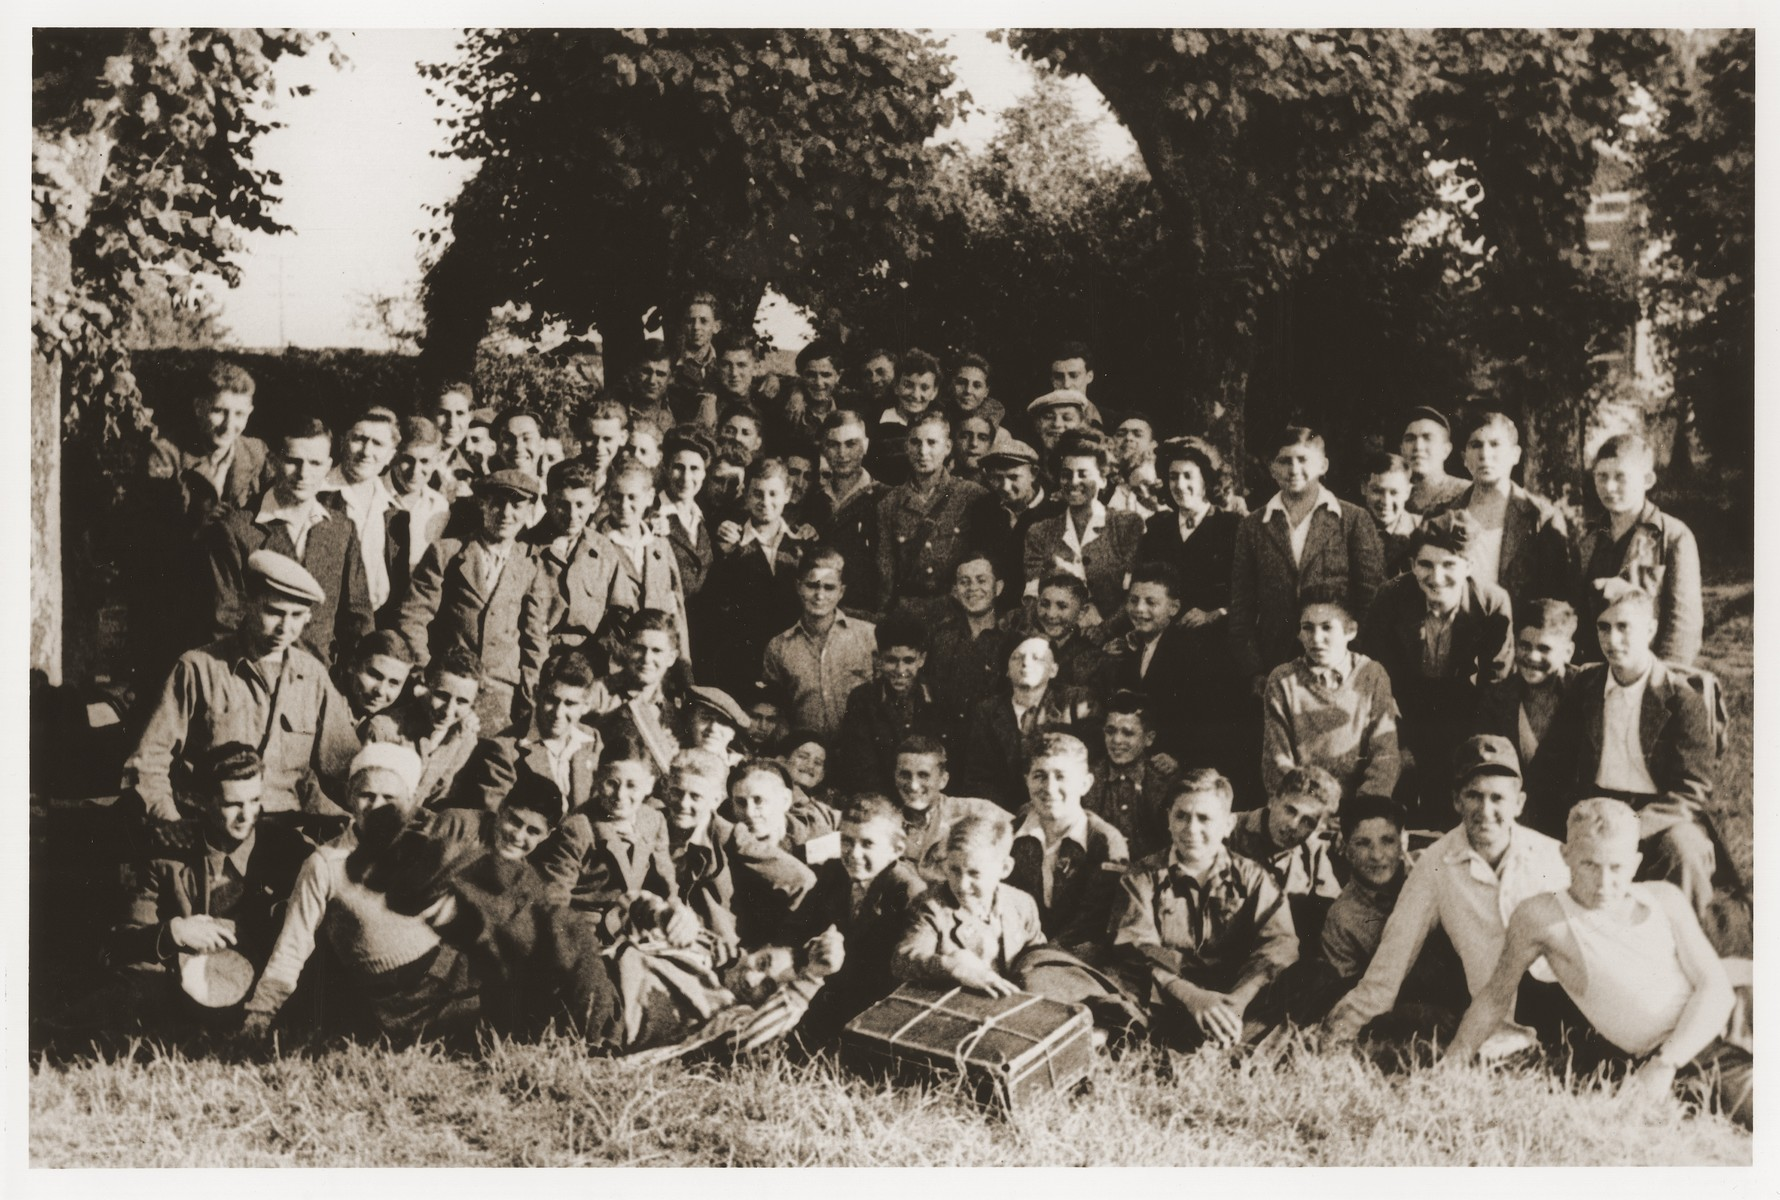 Group portrait of Jewish DP youth at the OSE (Oeuvre de Secours aux Enfants) home for Orthodox Jewish children in Ambloy.  Elie Wiesel is among those pictured.